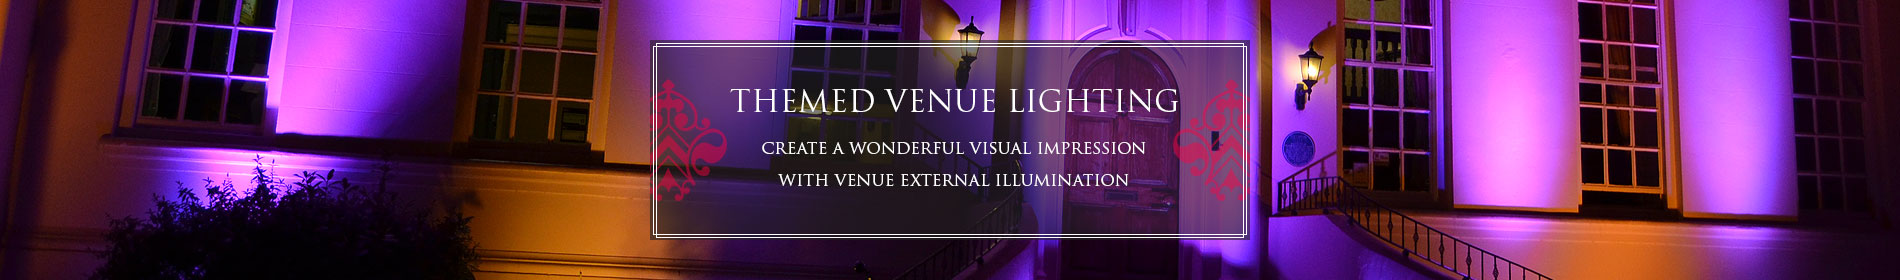 Themed Venue Lighting